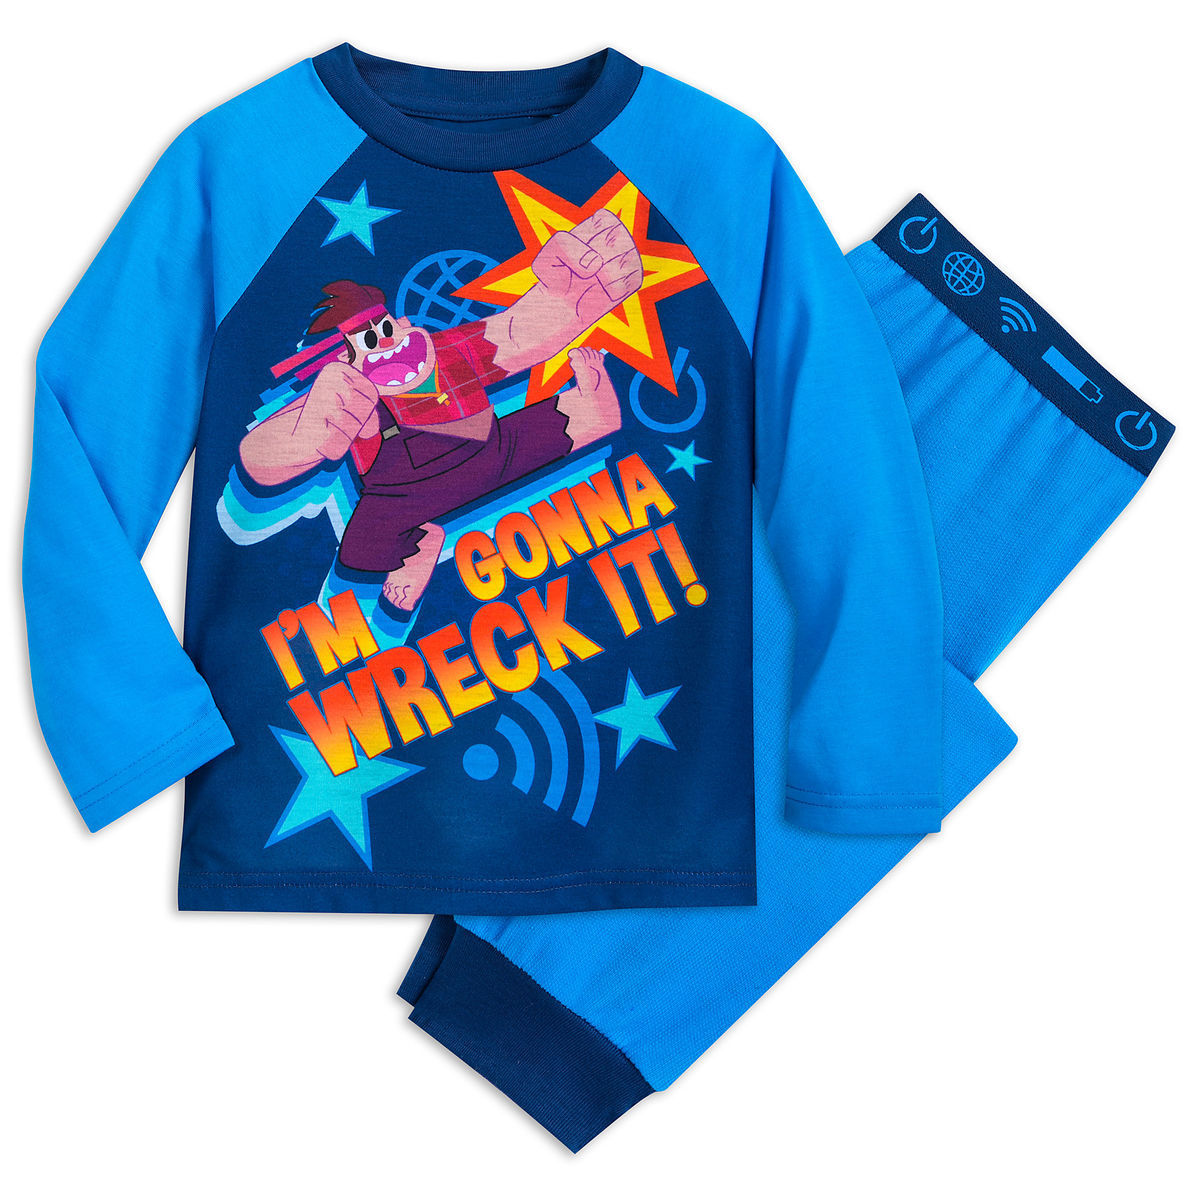 d460661aa6 Product Image of Wreck-It Ralph Pajama Set for Kids   1